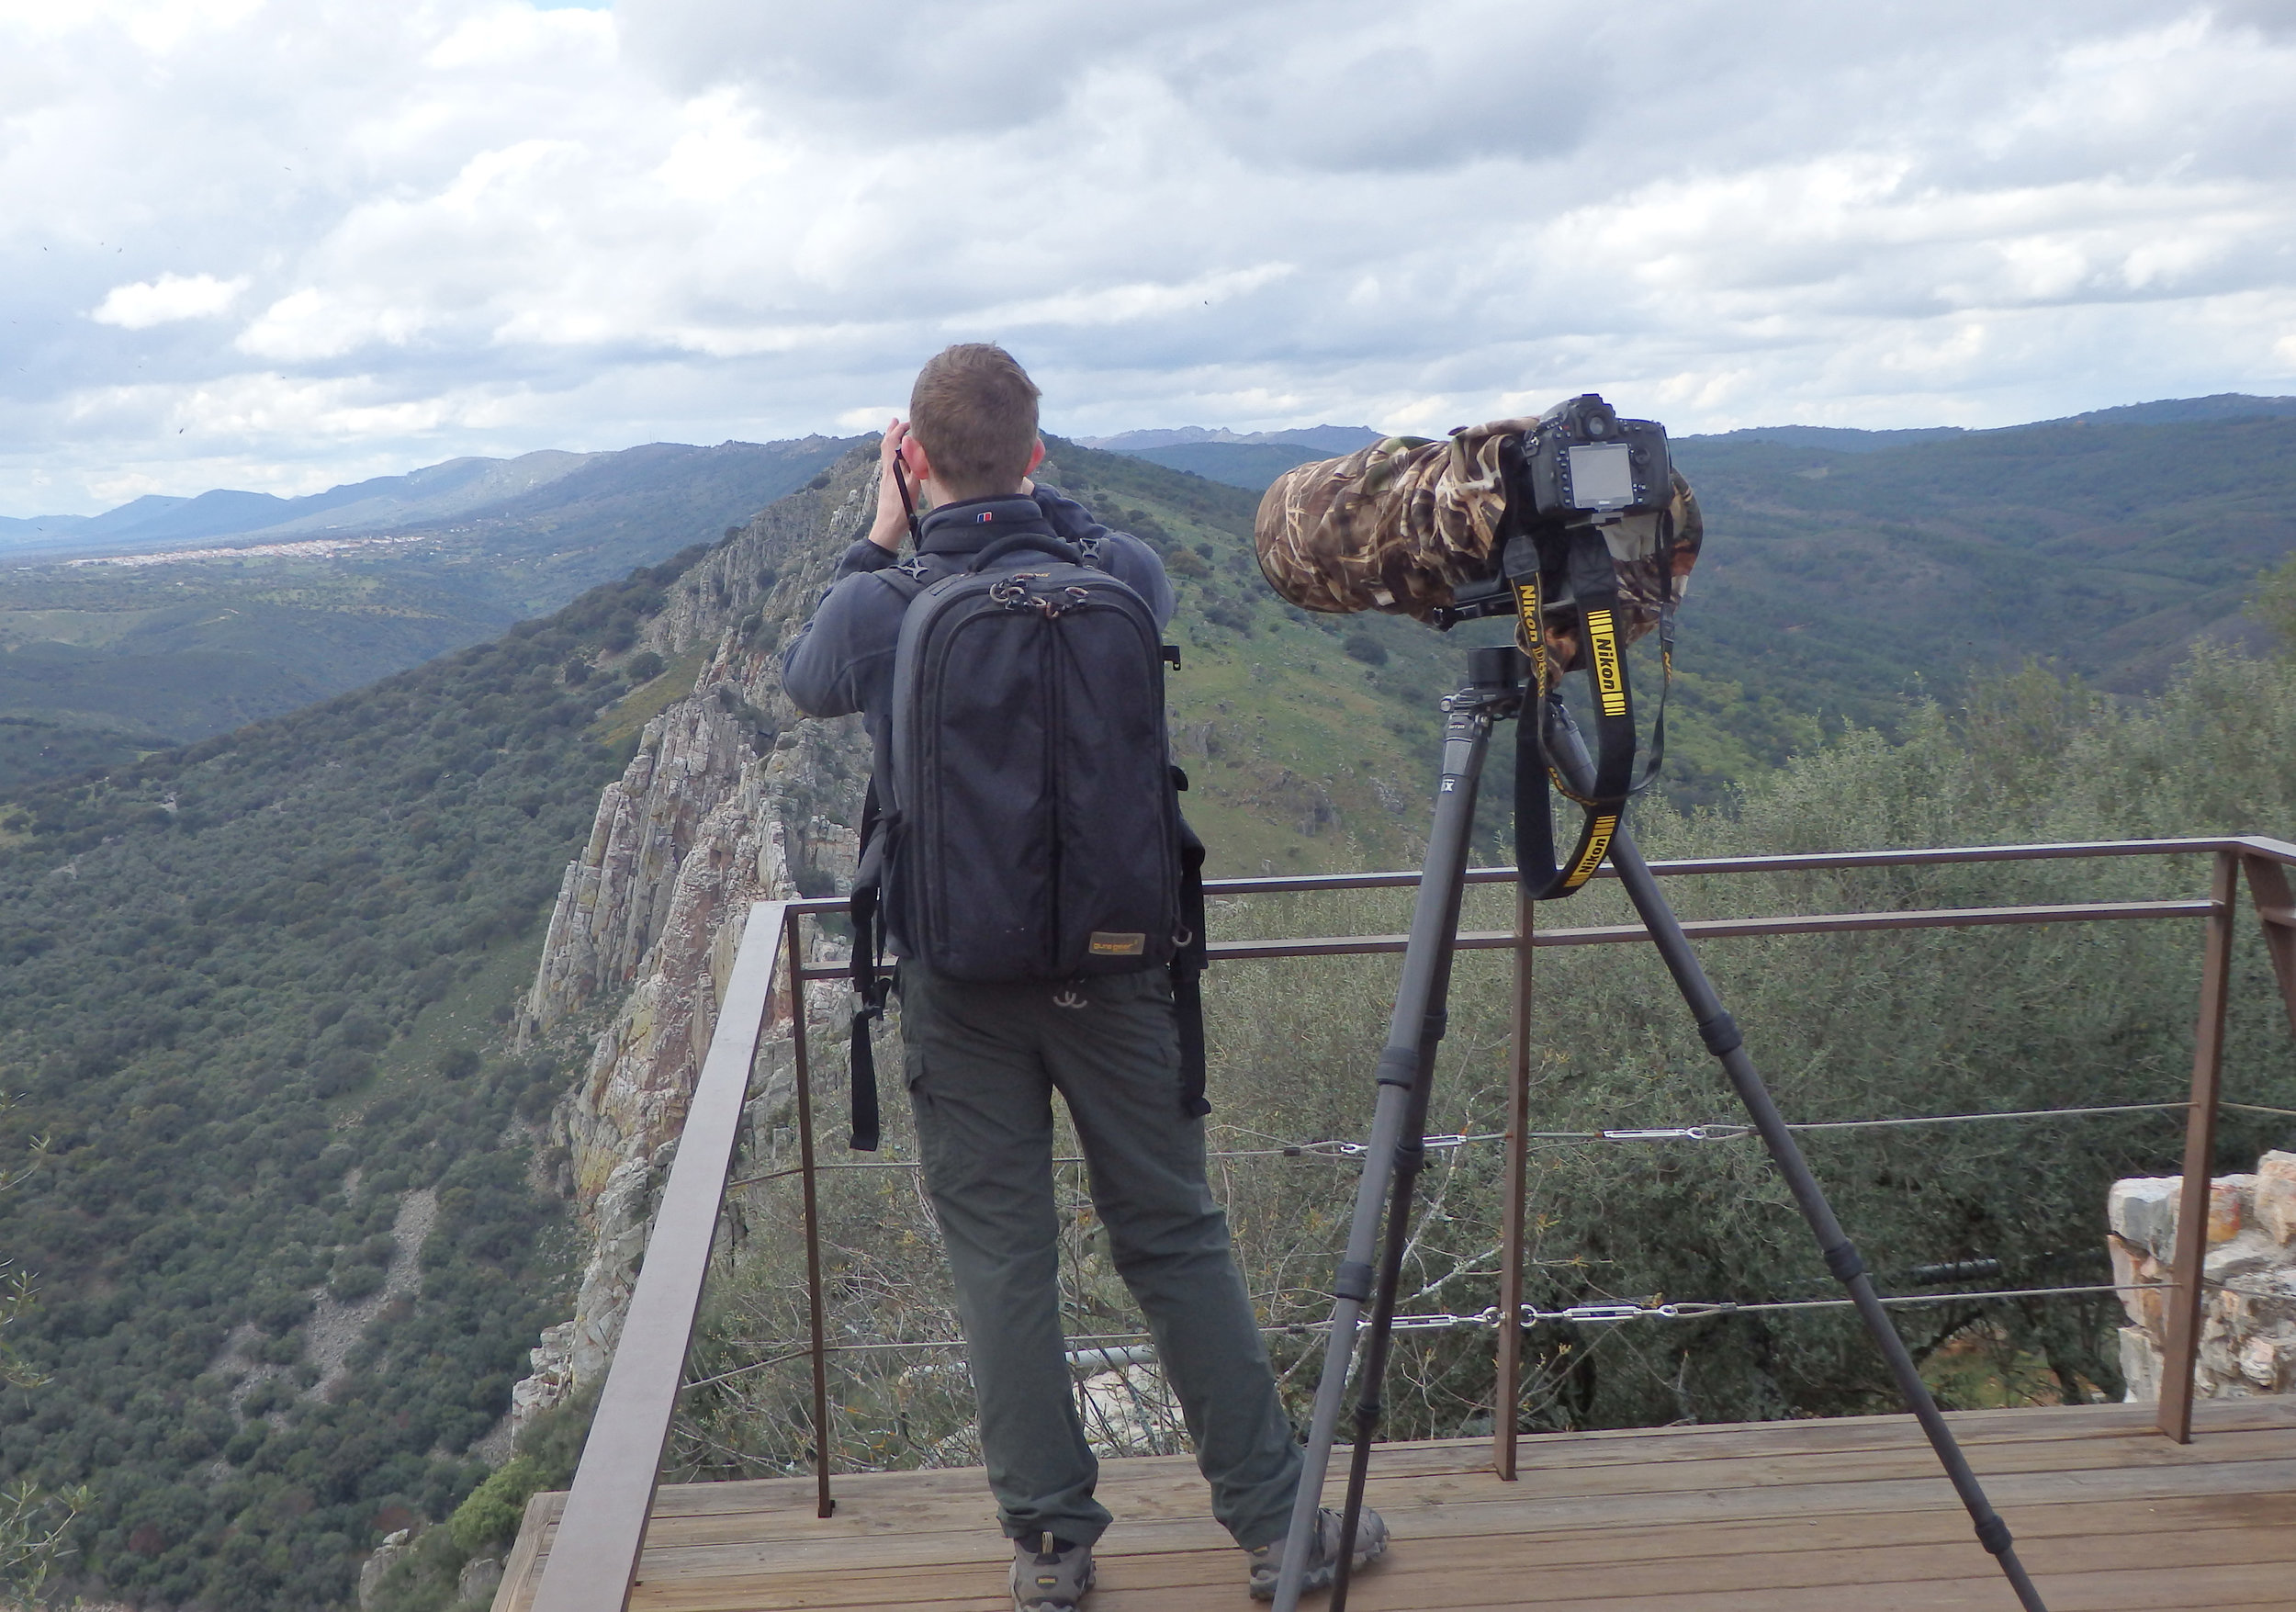 Photographing vultures in Monfragüe National Park, Spain